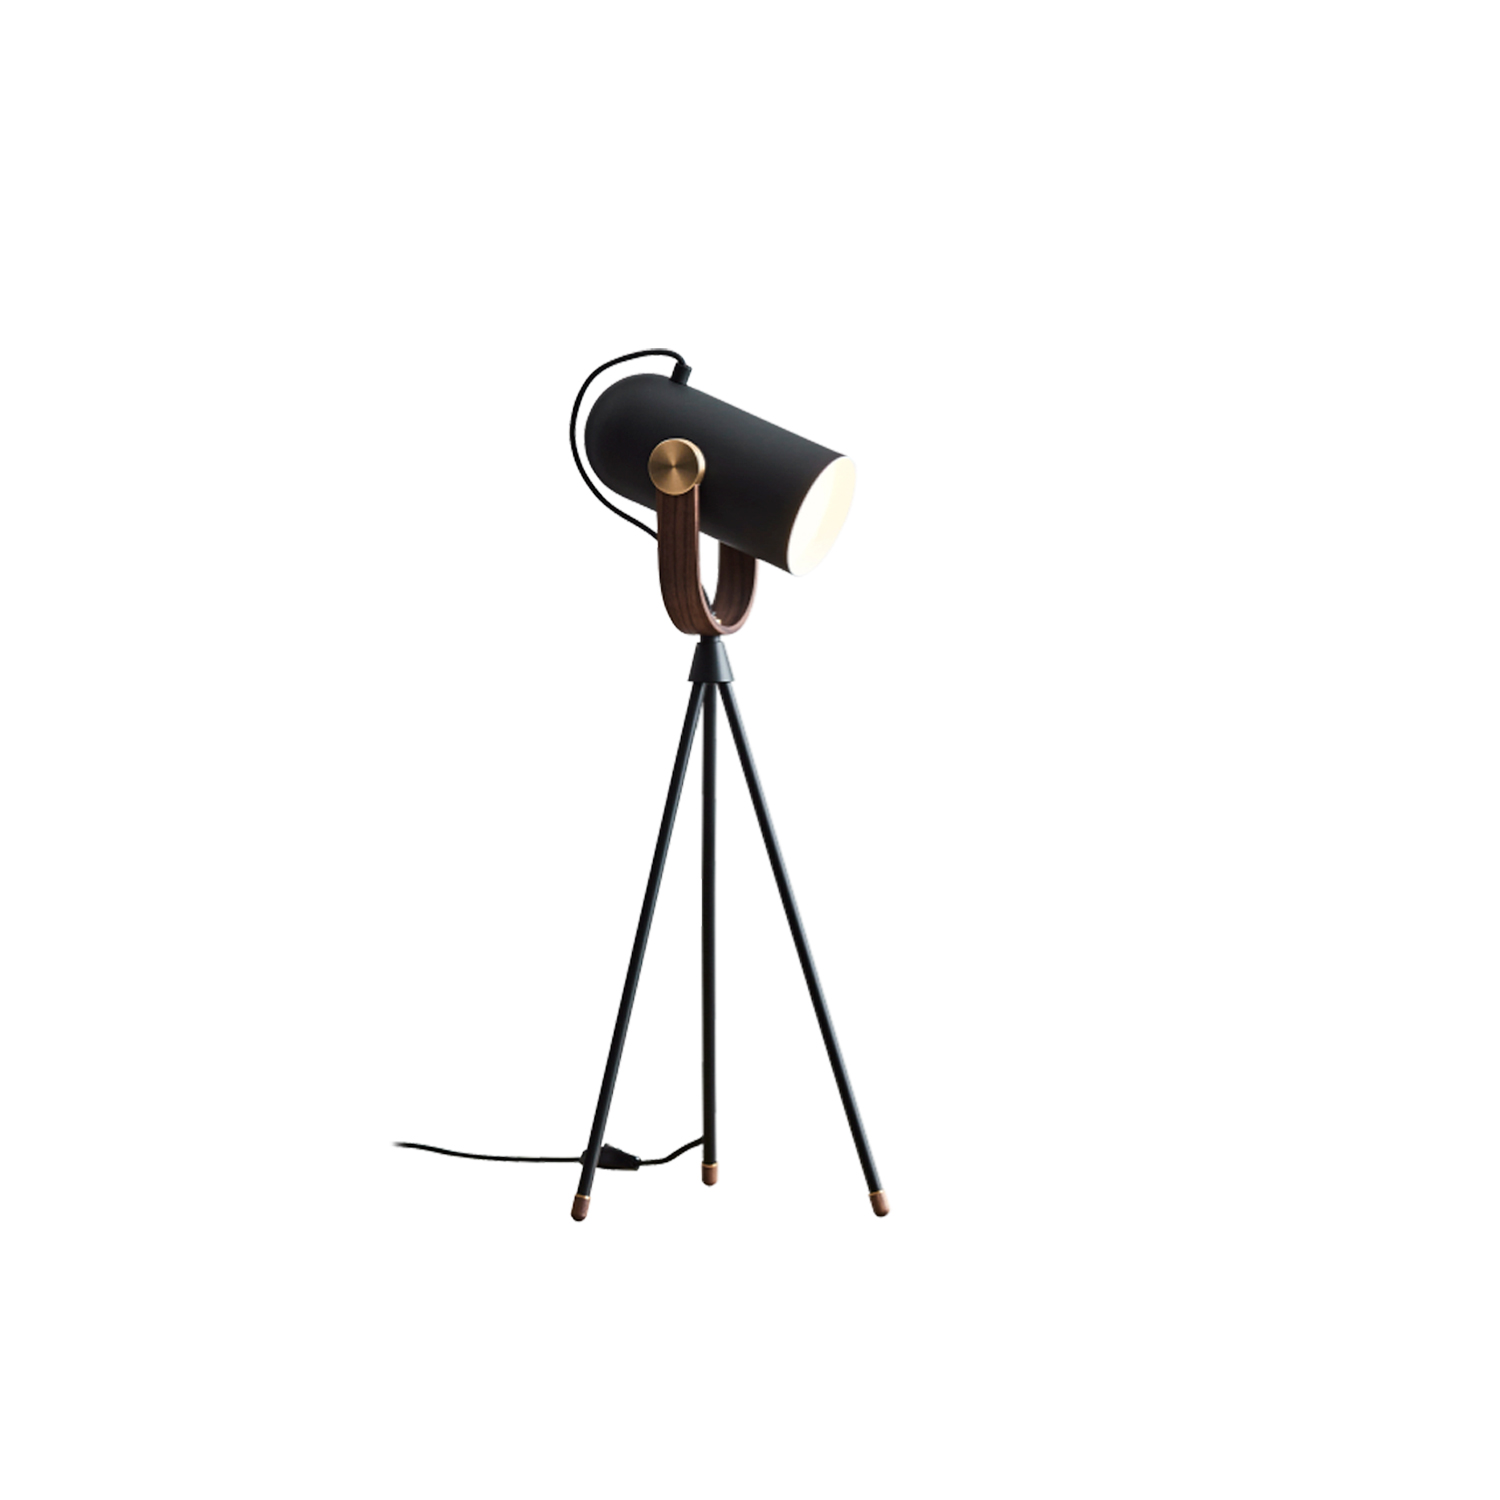 Carronade High Table Lamp - Our brand-new CARRONADE High Table in black has been fashioned into a miniature version of the CARRONADE High floor lamp, which includes the distinctive slender tripod legs and tilting head. CARRONADE High Table has the exact features of the series, where walnut wood and brass details support a black metal head that has a diffuser for optional use. A fantastic fashionista amongst the usual LE KLINT suspects!  Carronade high table lamp comes in a black or sand painted aluminium finish with brass or aluminium metal discs and American walnut or oak details. All models are fitted with LED light bulbs.   | Matter of Stuff